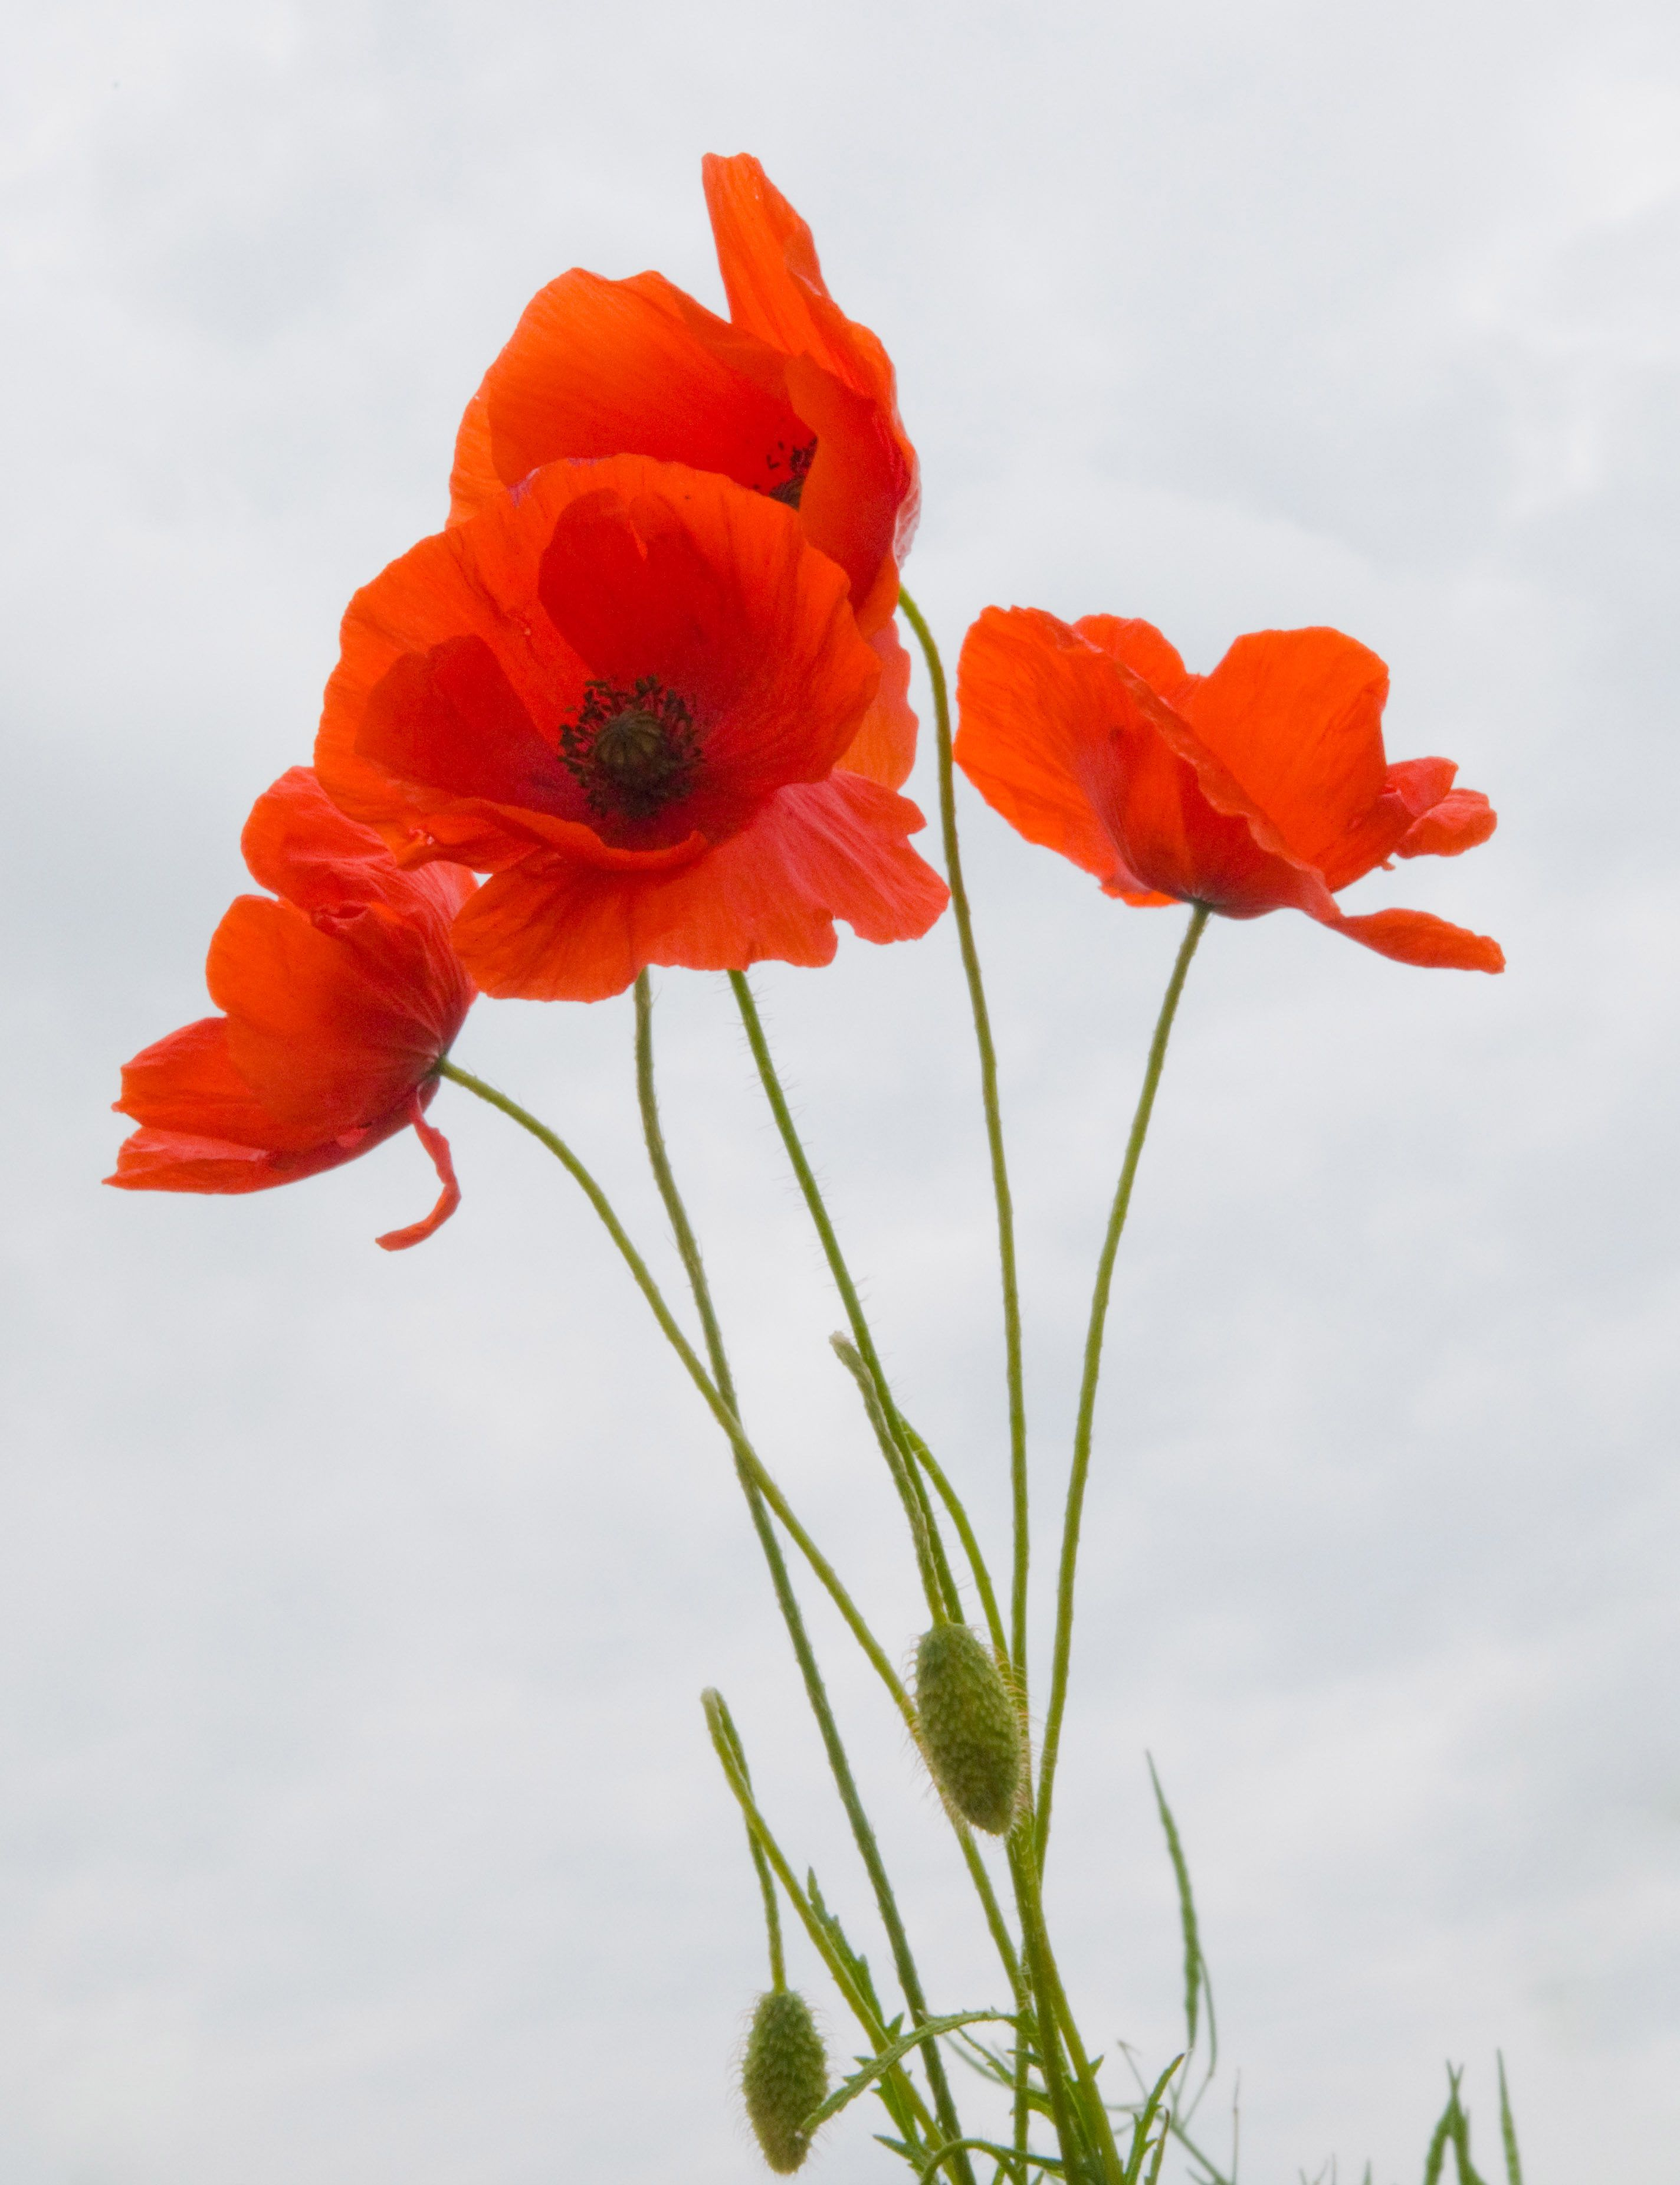 Poppies against the sky 1 photo by john ecker flower power when i was 5 i pulled all of the poppies out of the flower bed sorry dad s mightylinksfo